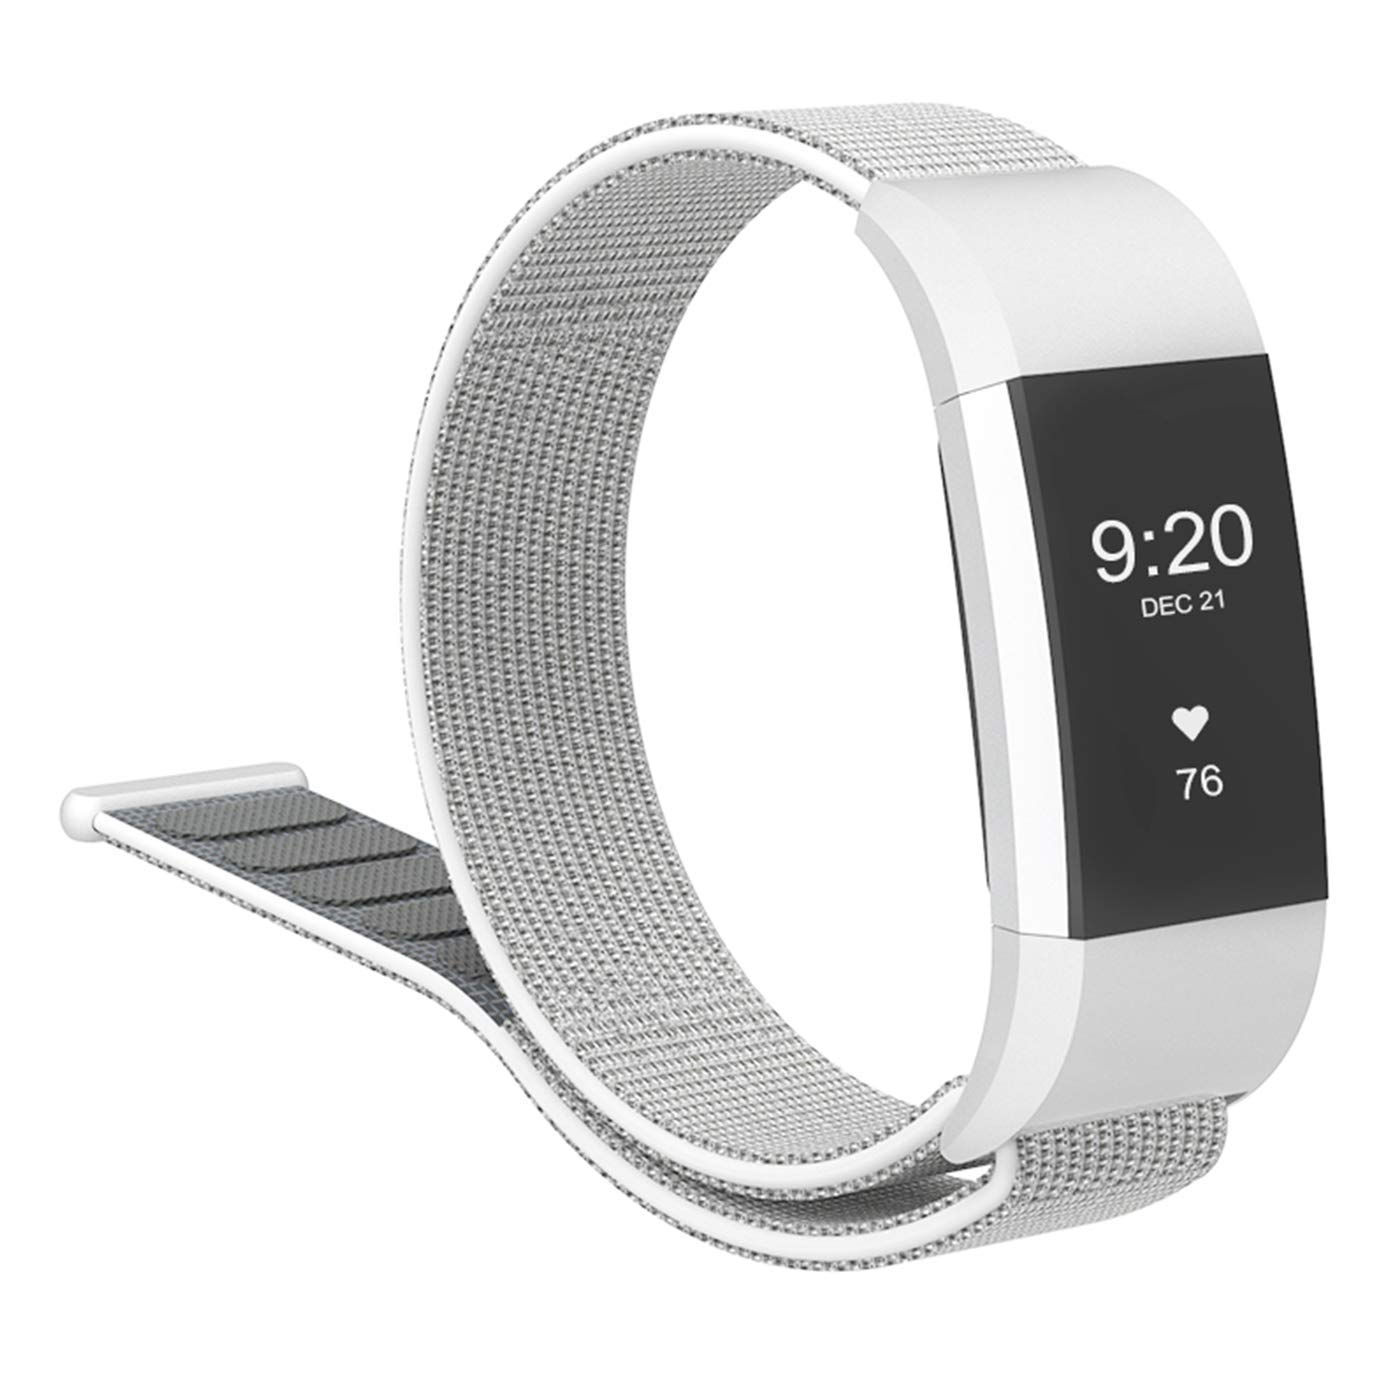 cosyzanx Fitbit Charge 2バンドソフトナイロンメンズレディース軽量交換用ストラップアクセサリーバンドFitbit Charge 2 Fitness Tracker with VelcroスポーツWristbands複数の色 B07DH5ZCB2